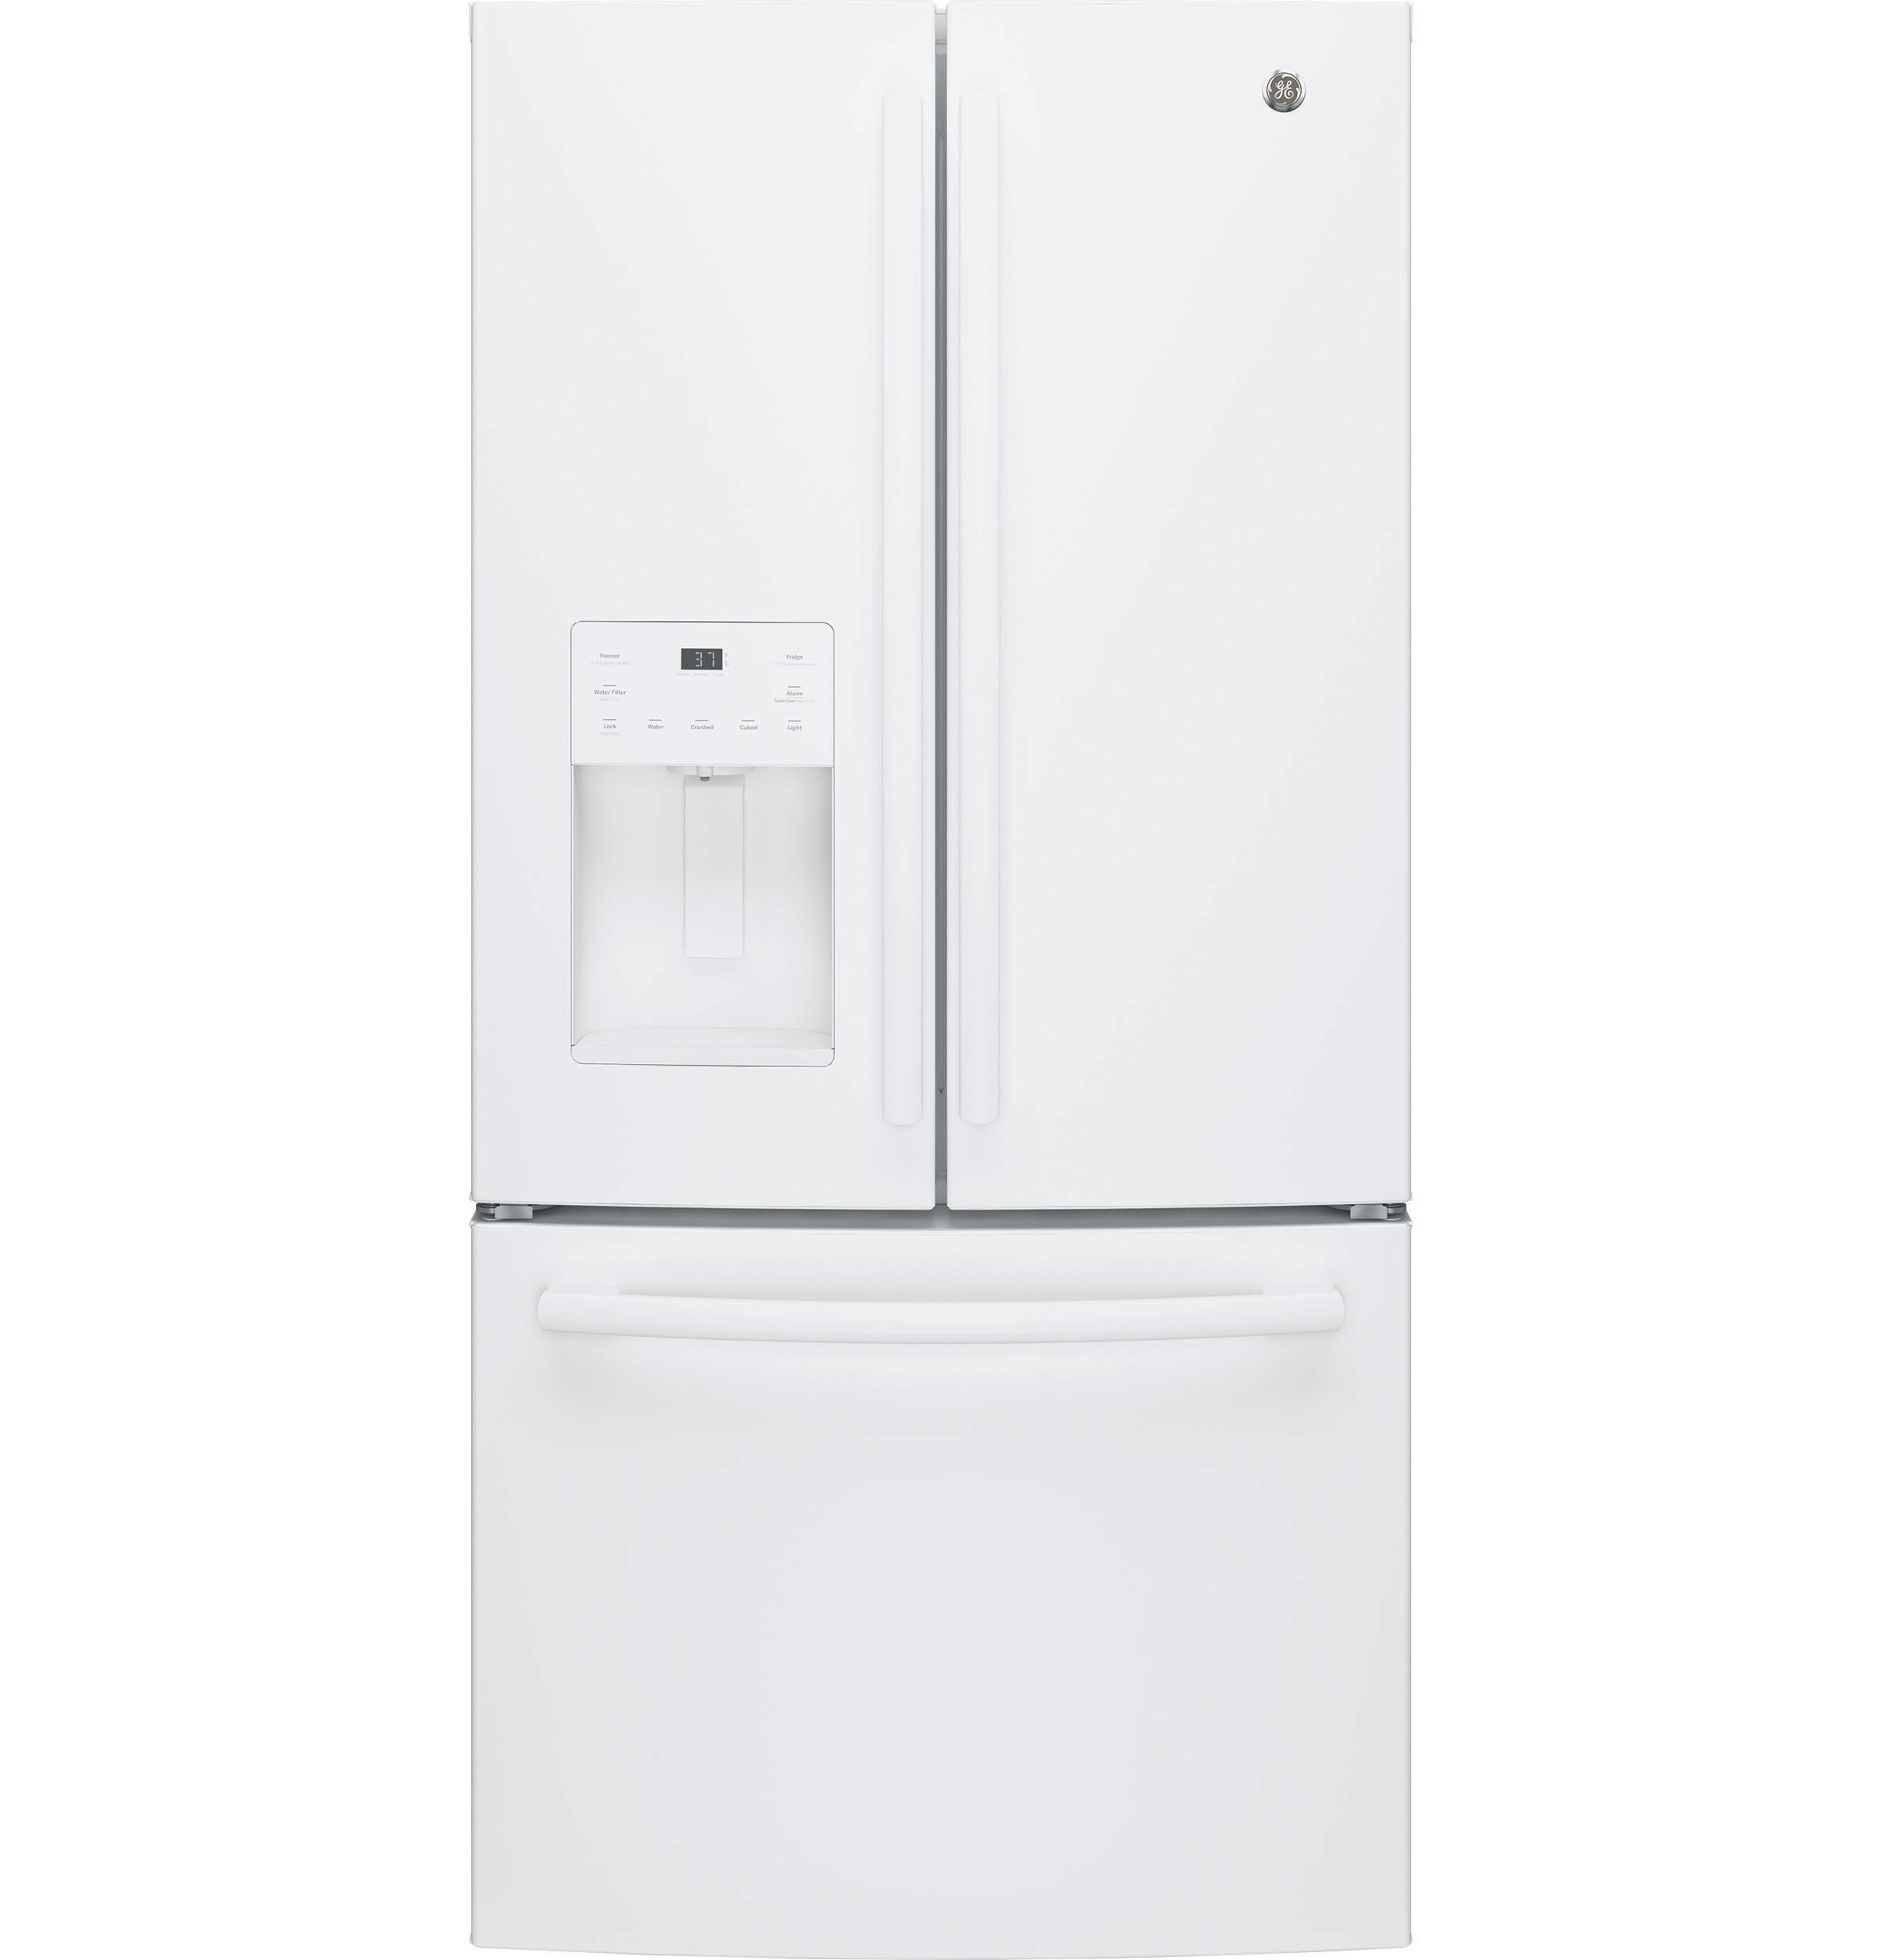 GE GE® ENERGY STAR® 23.7 Cu. Ft. French-Door Refrigerator